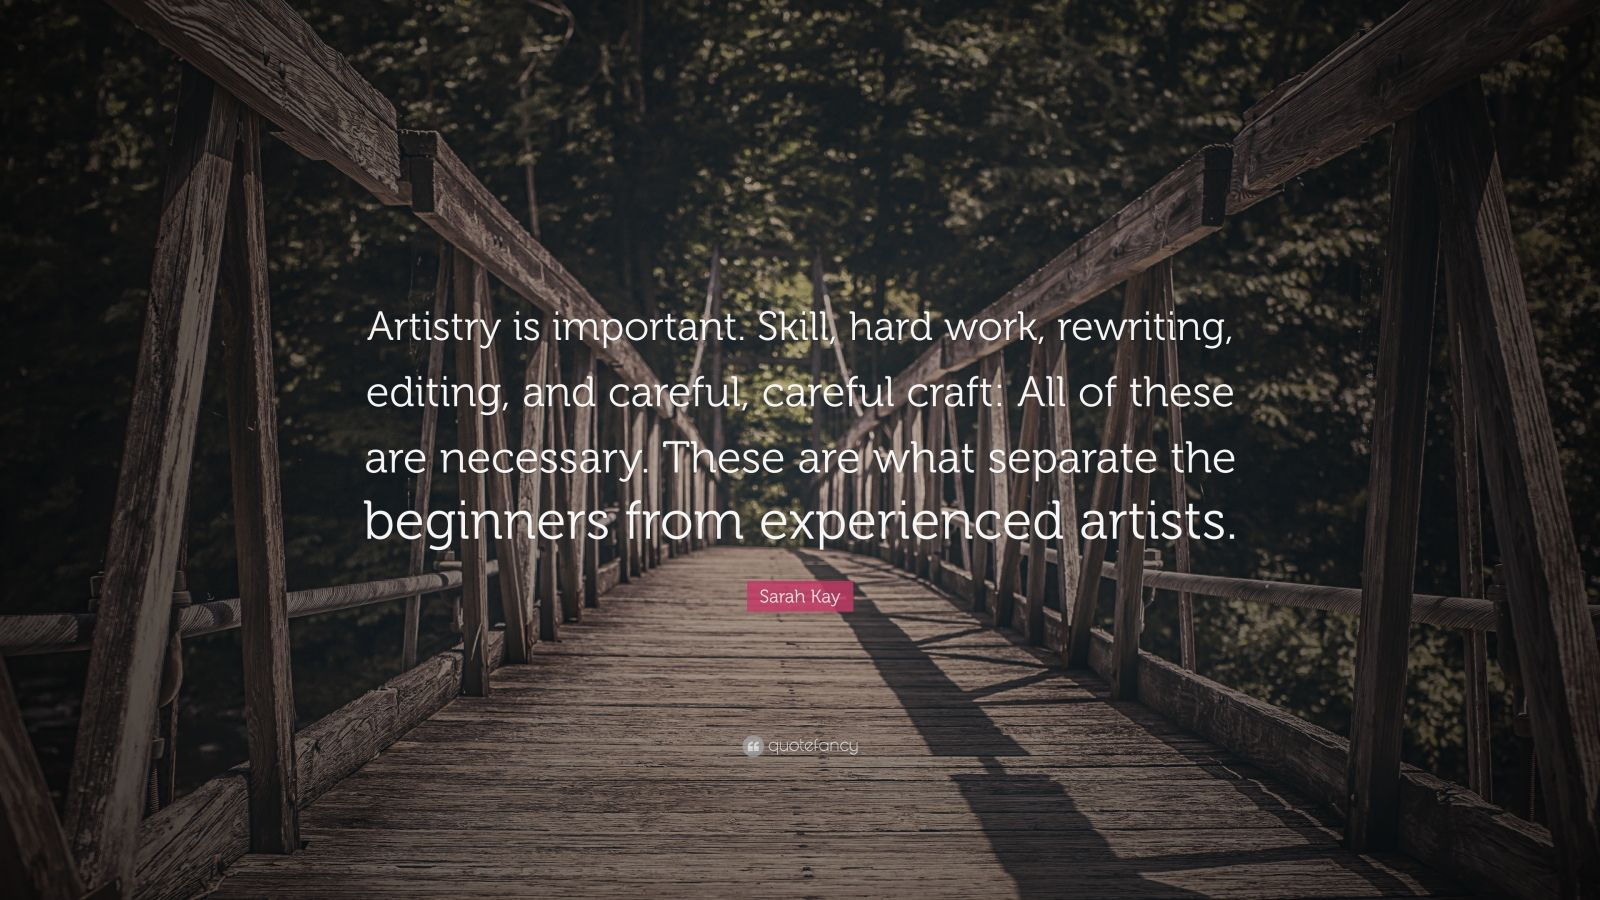 """Sarah Kay Quote: """"Artistry is important. Skill, hard work, rewriting, editing, and careful, careful craft: All of these are necessary. These are what separate the beginners from experienced artists."""""""